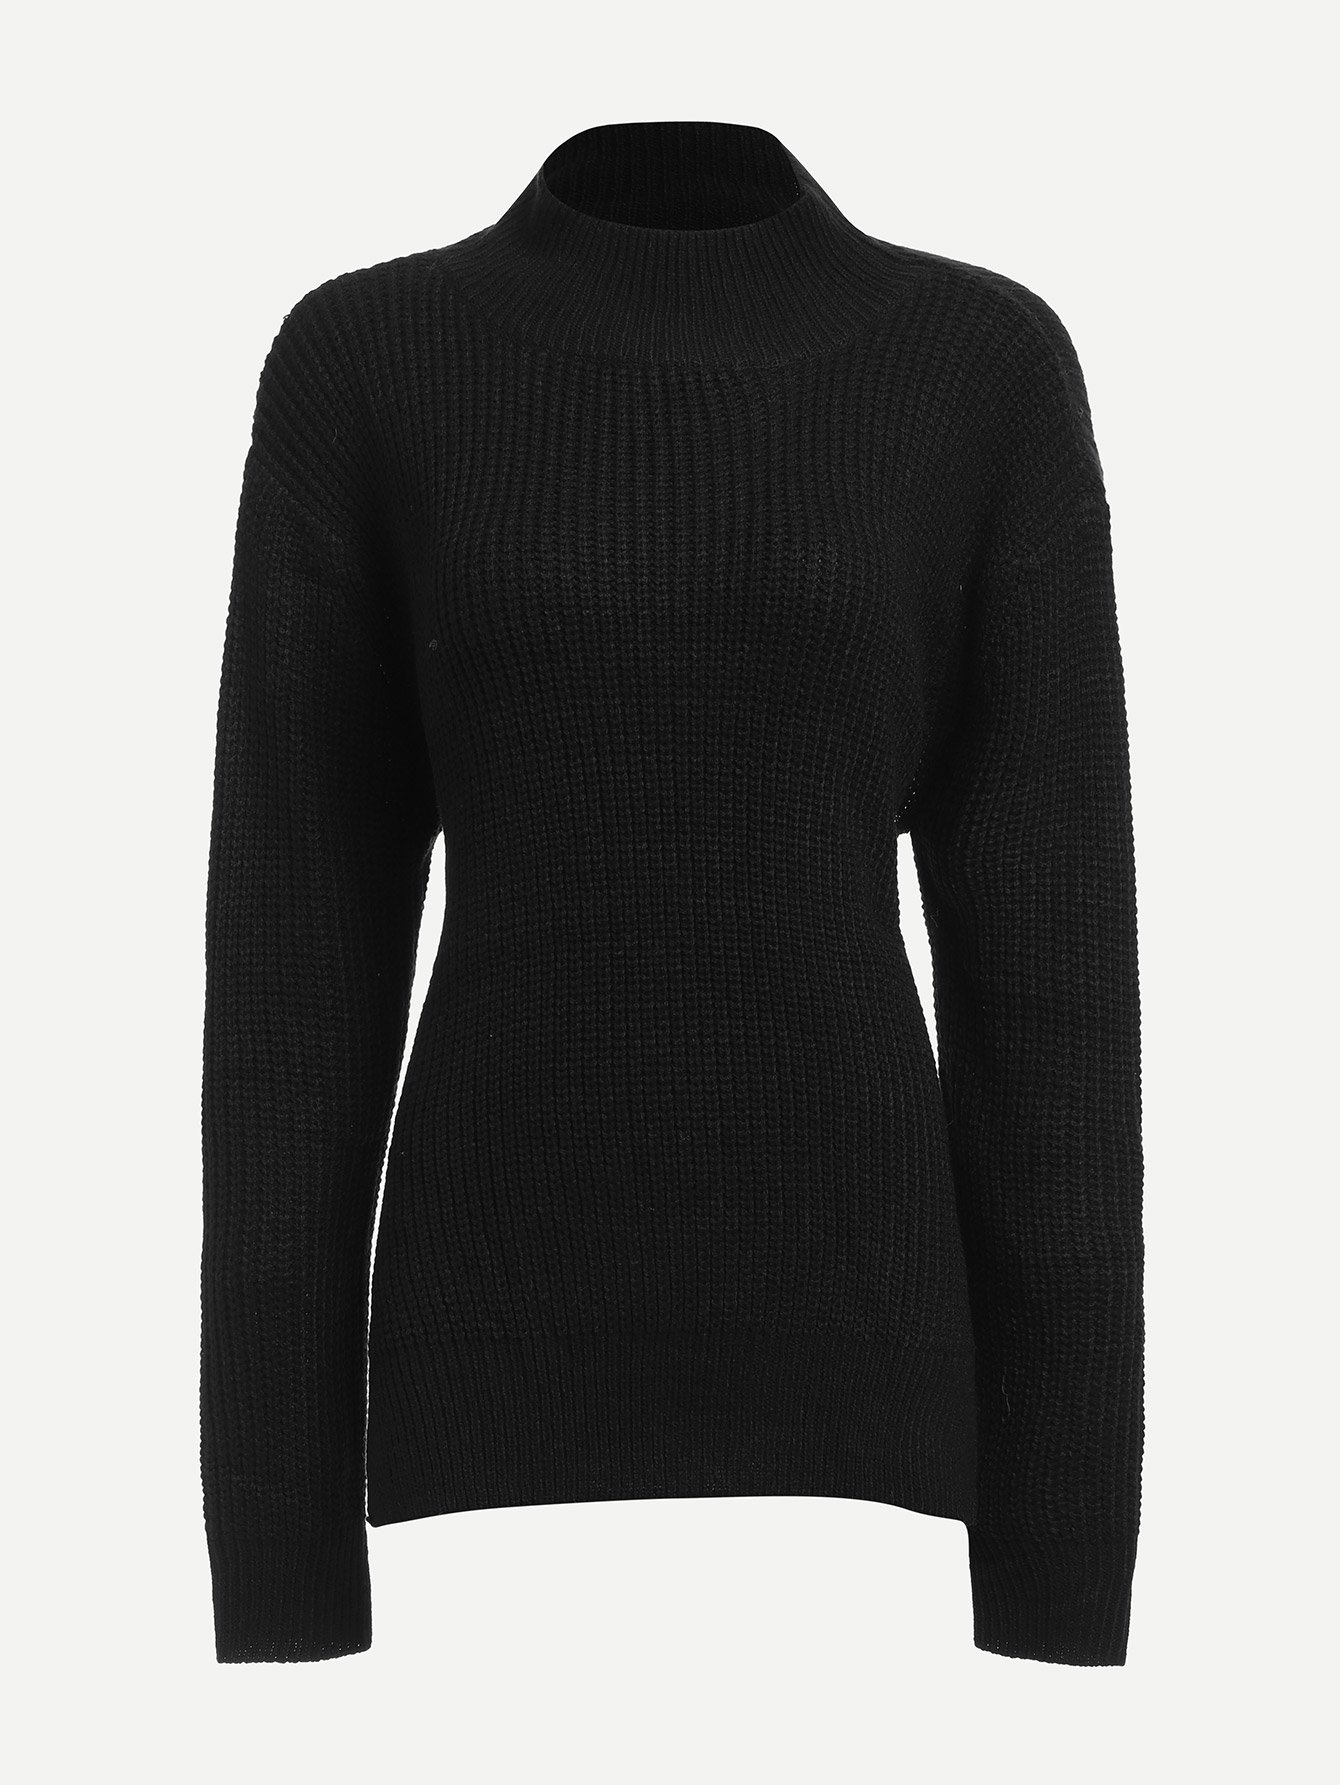 Knot Open Back Slim Fitted Jumper